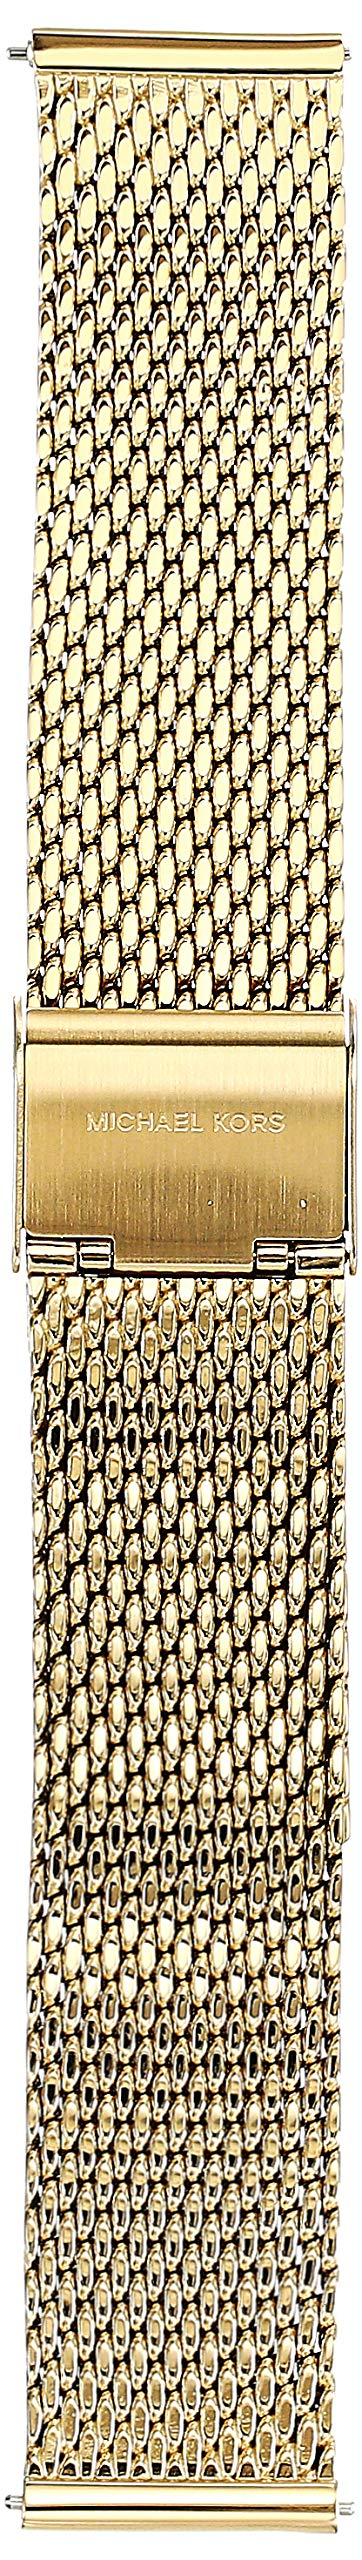 Michael Kors Stainless-Steel-Plated Gold Watch Strap, 18 (Model: MKT9074) by Michael Kors